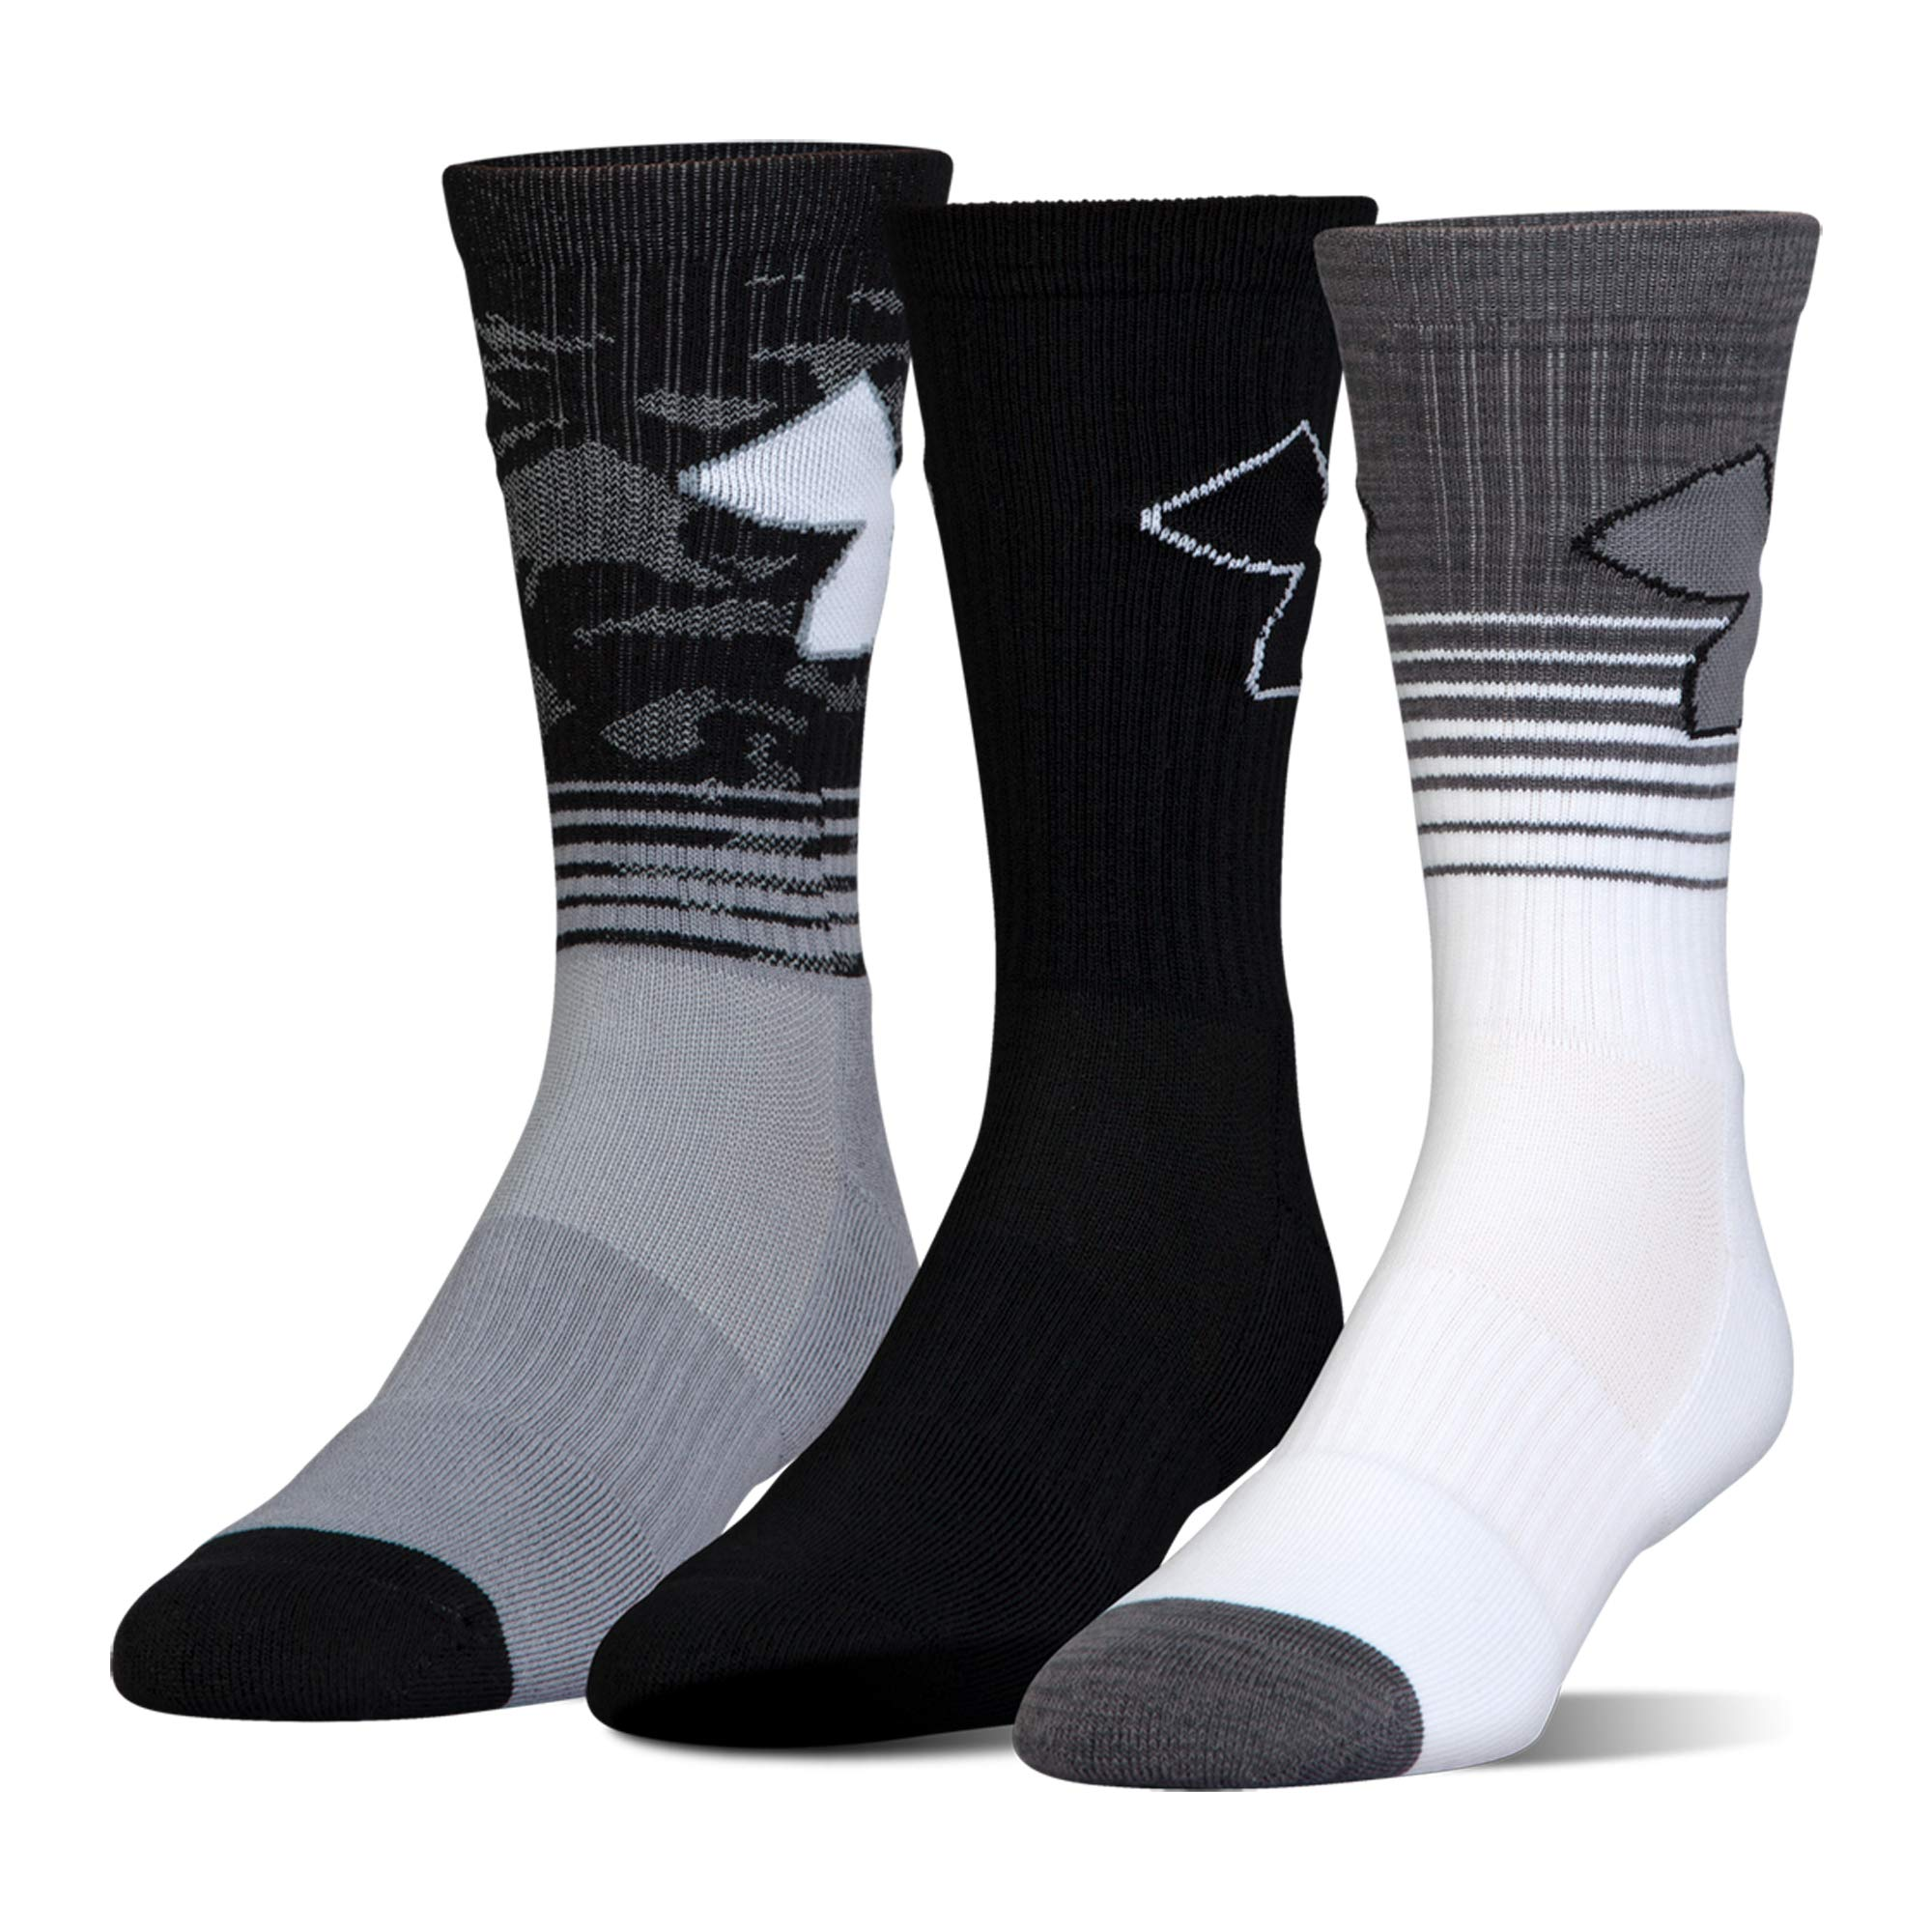 Boy's Under Armour Boys Phenom 2.0 Crew (3 Pack), Steel Grey, Youth Large by Under Armour